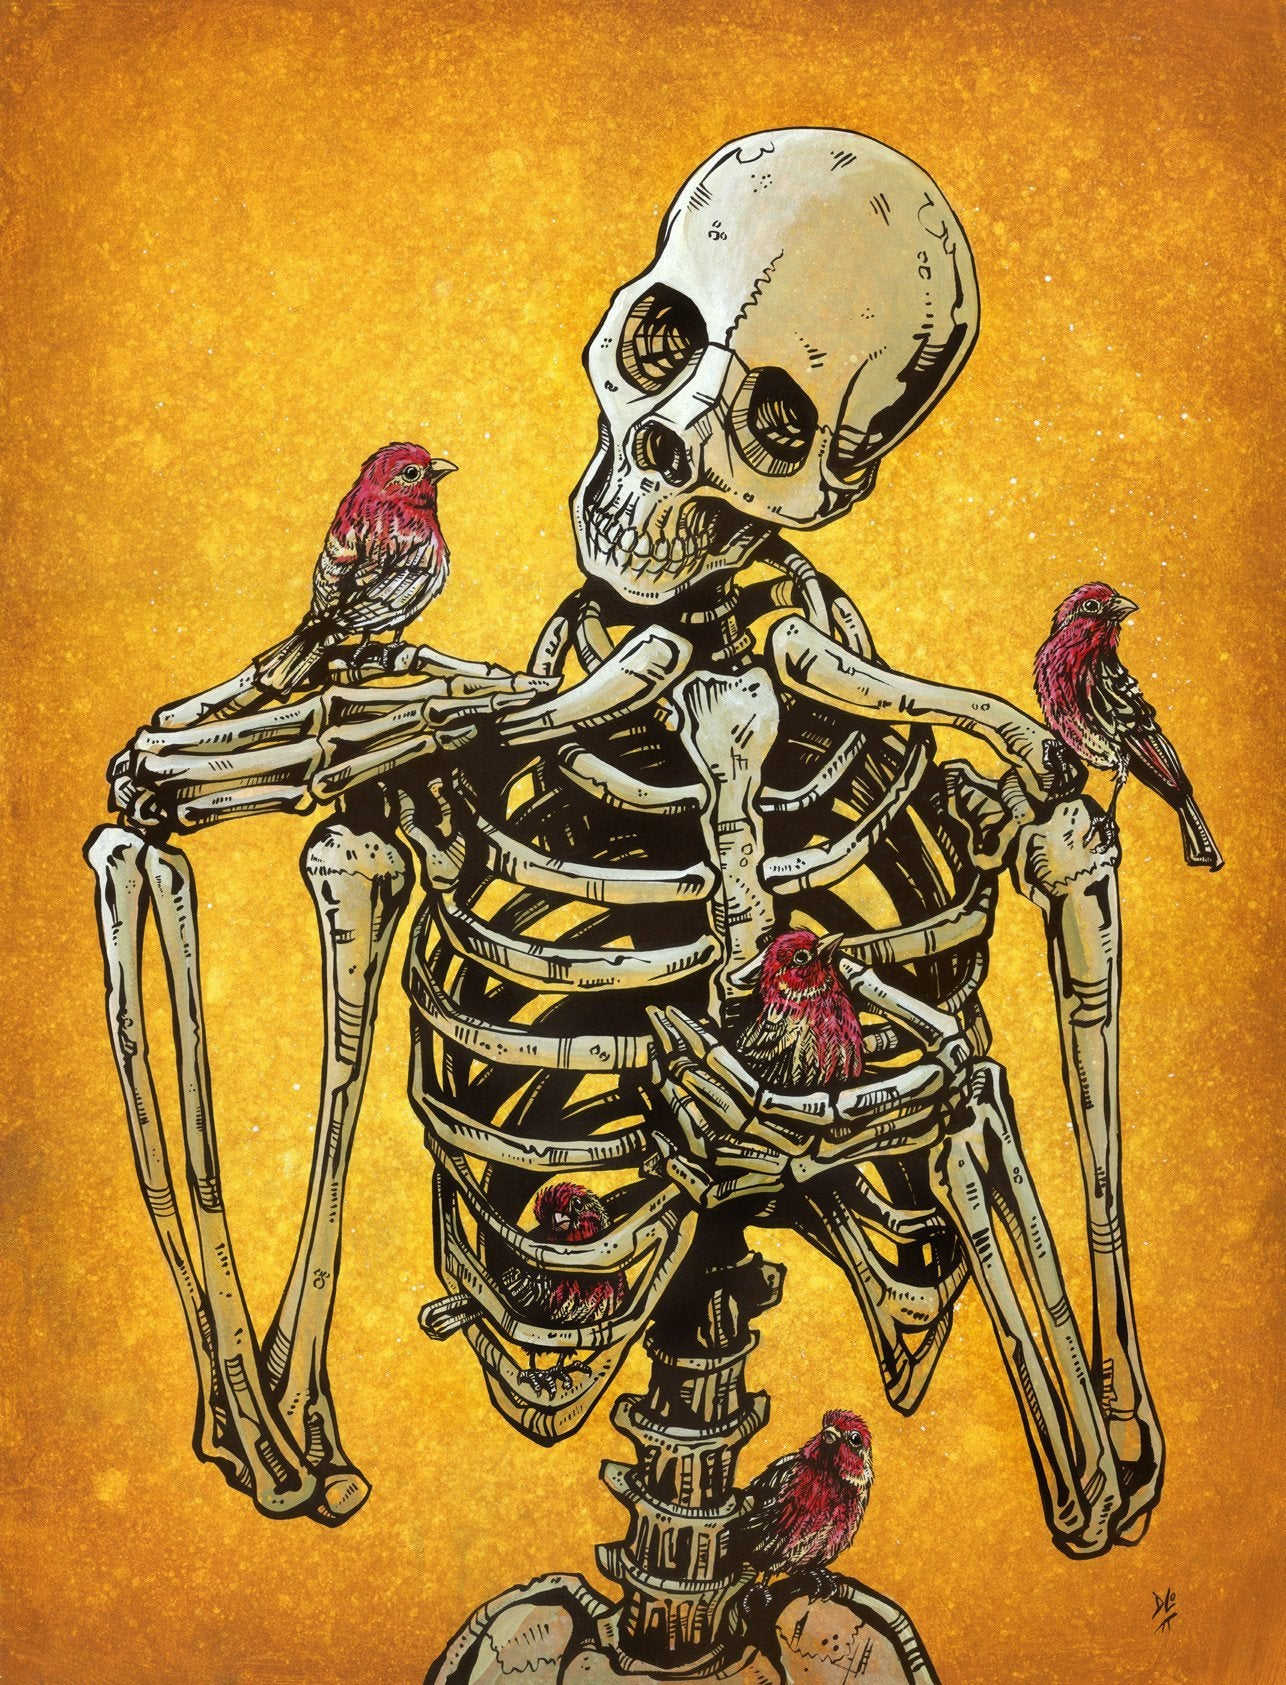 Birds of a Feather by Day of the Dead Artist David Lozeau, Day of the Dead Art, Dia de los Muertos Art, Dia de los Muertos Artist